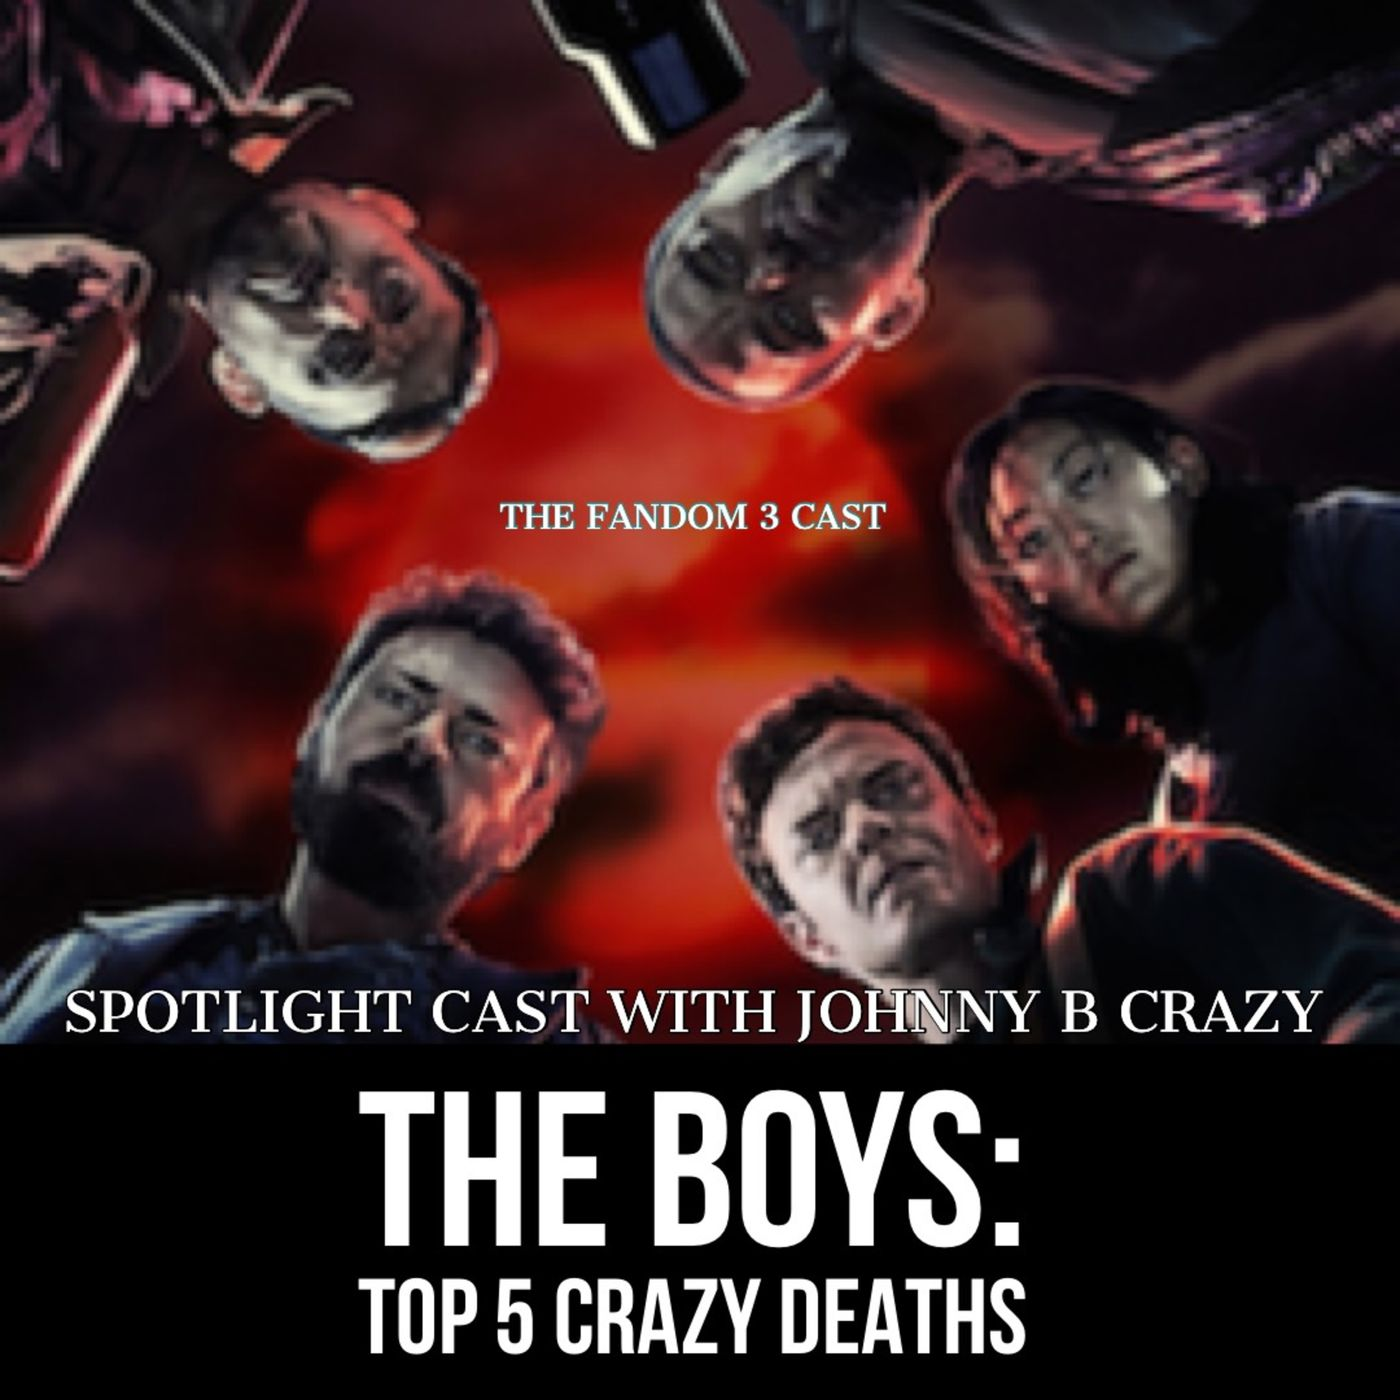 The Boys: Top 5 Crazy Deaths with Johnny B crazy